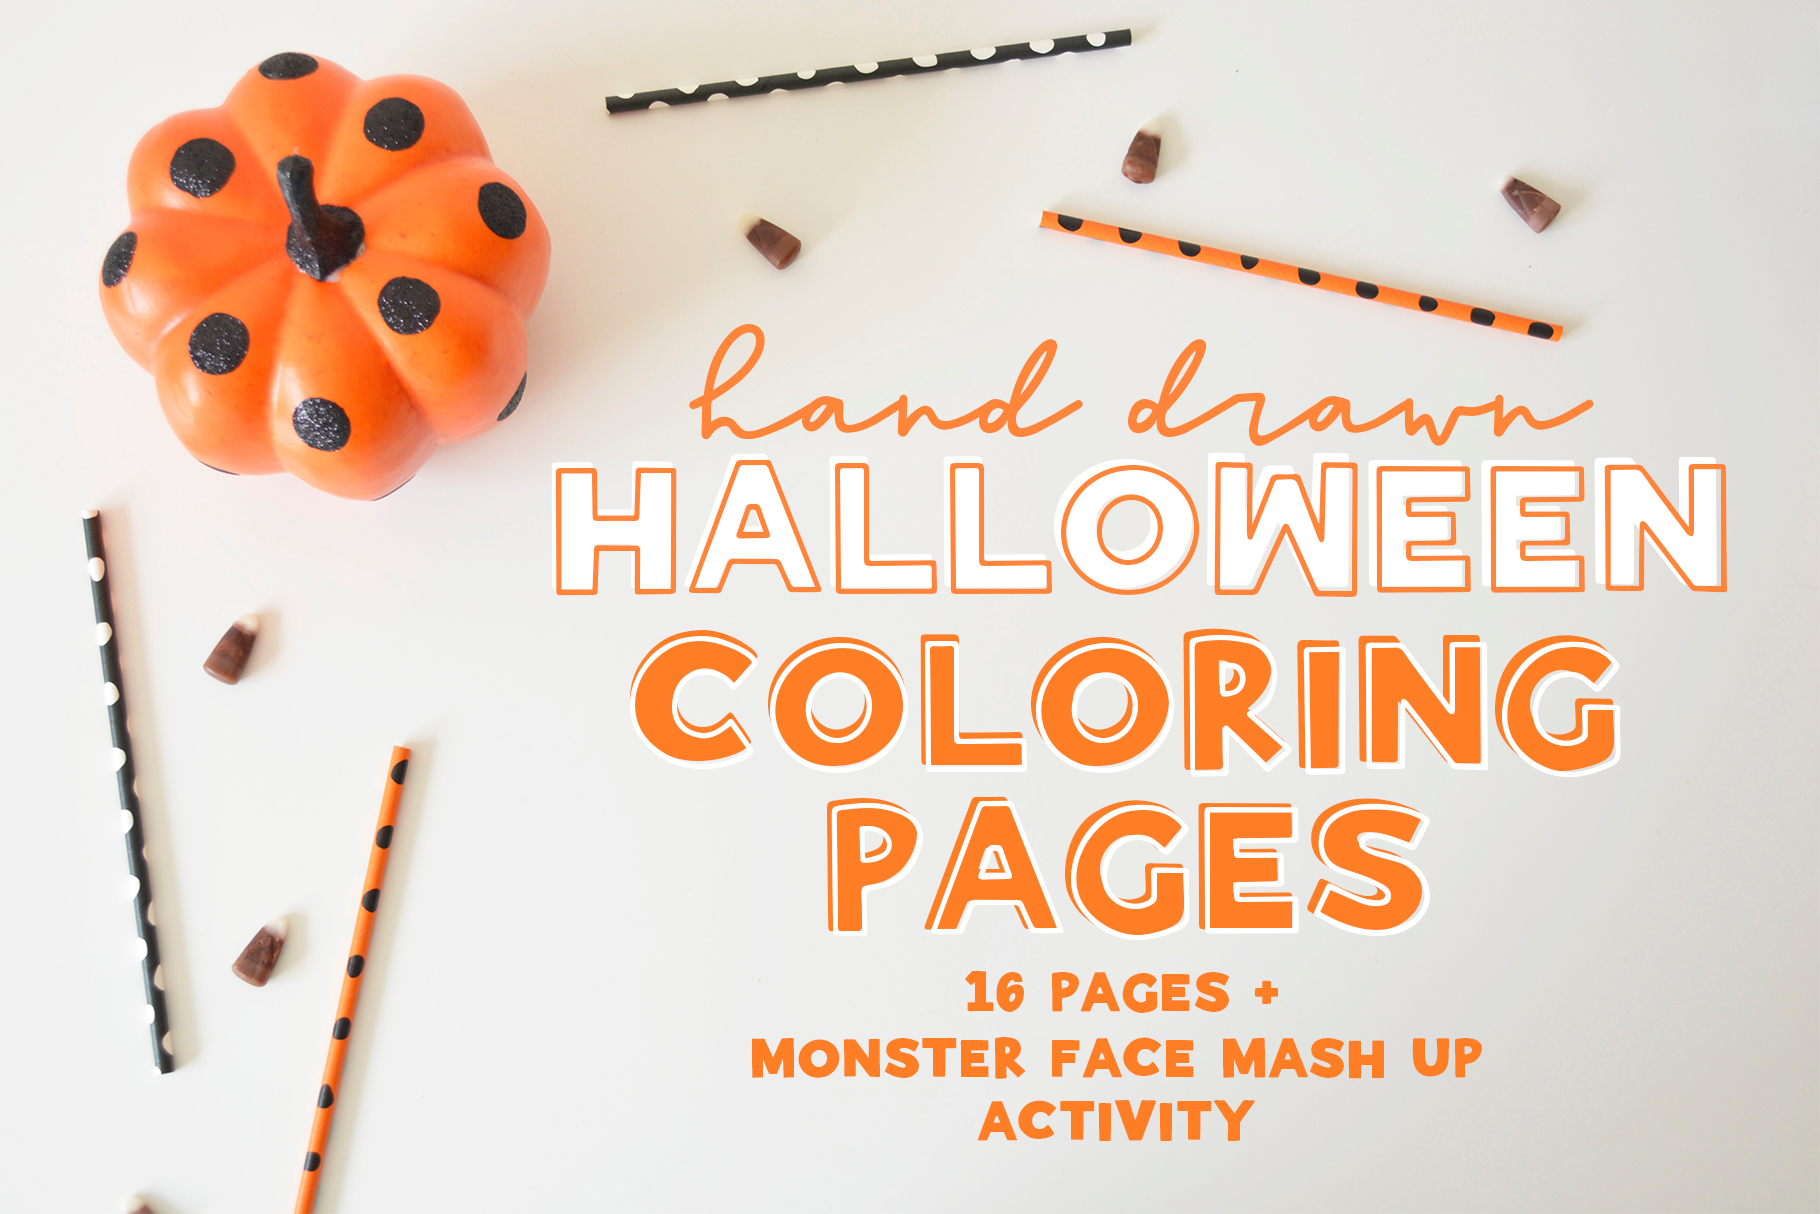 Halloween Coloring Pages & Activity example image 1